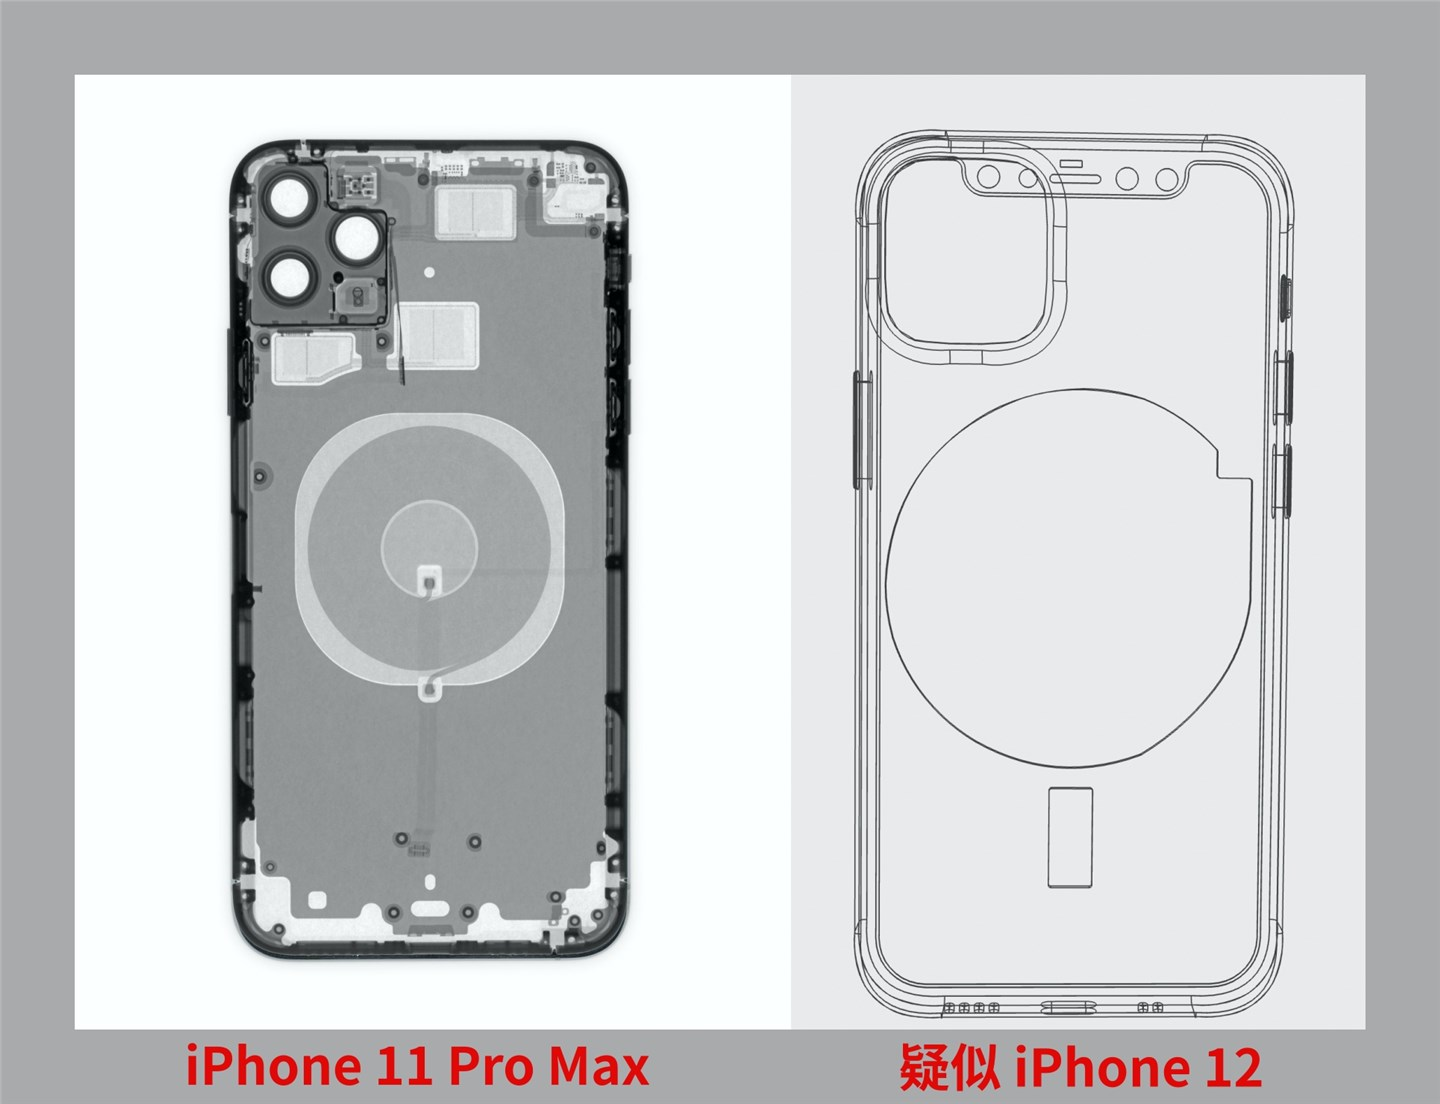 iphone 12 charging exposed